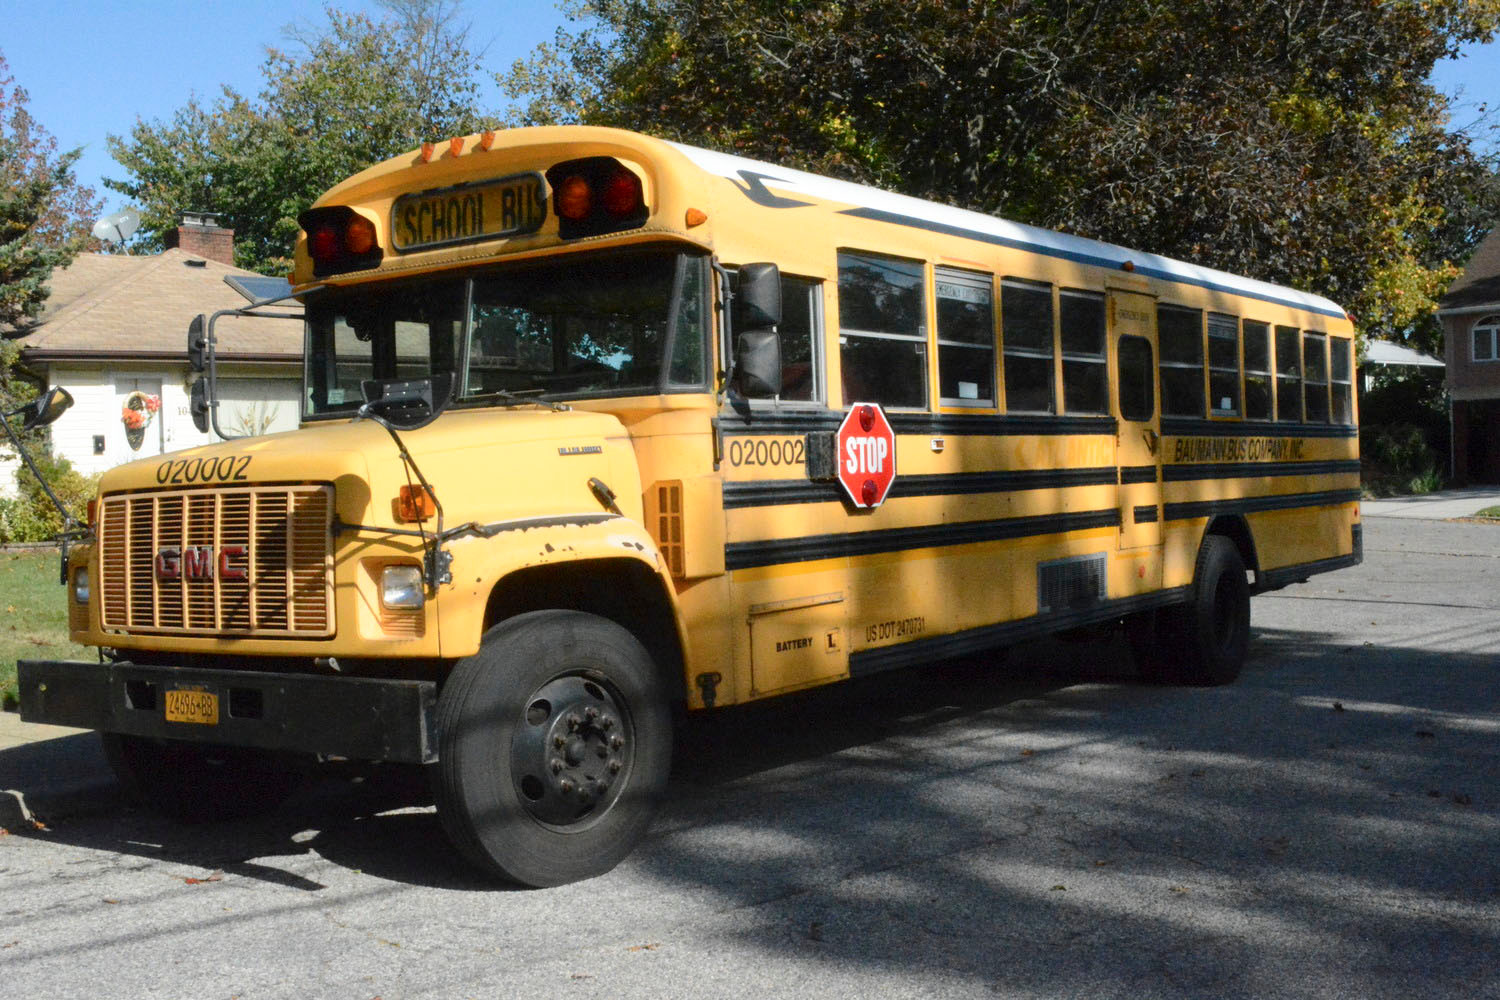 The district renewed its contract with Baumann Bus Company, which went on strike for two weeks last year.